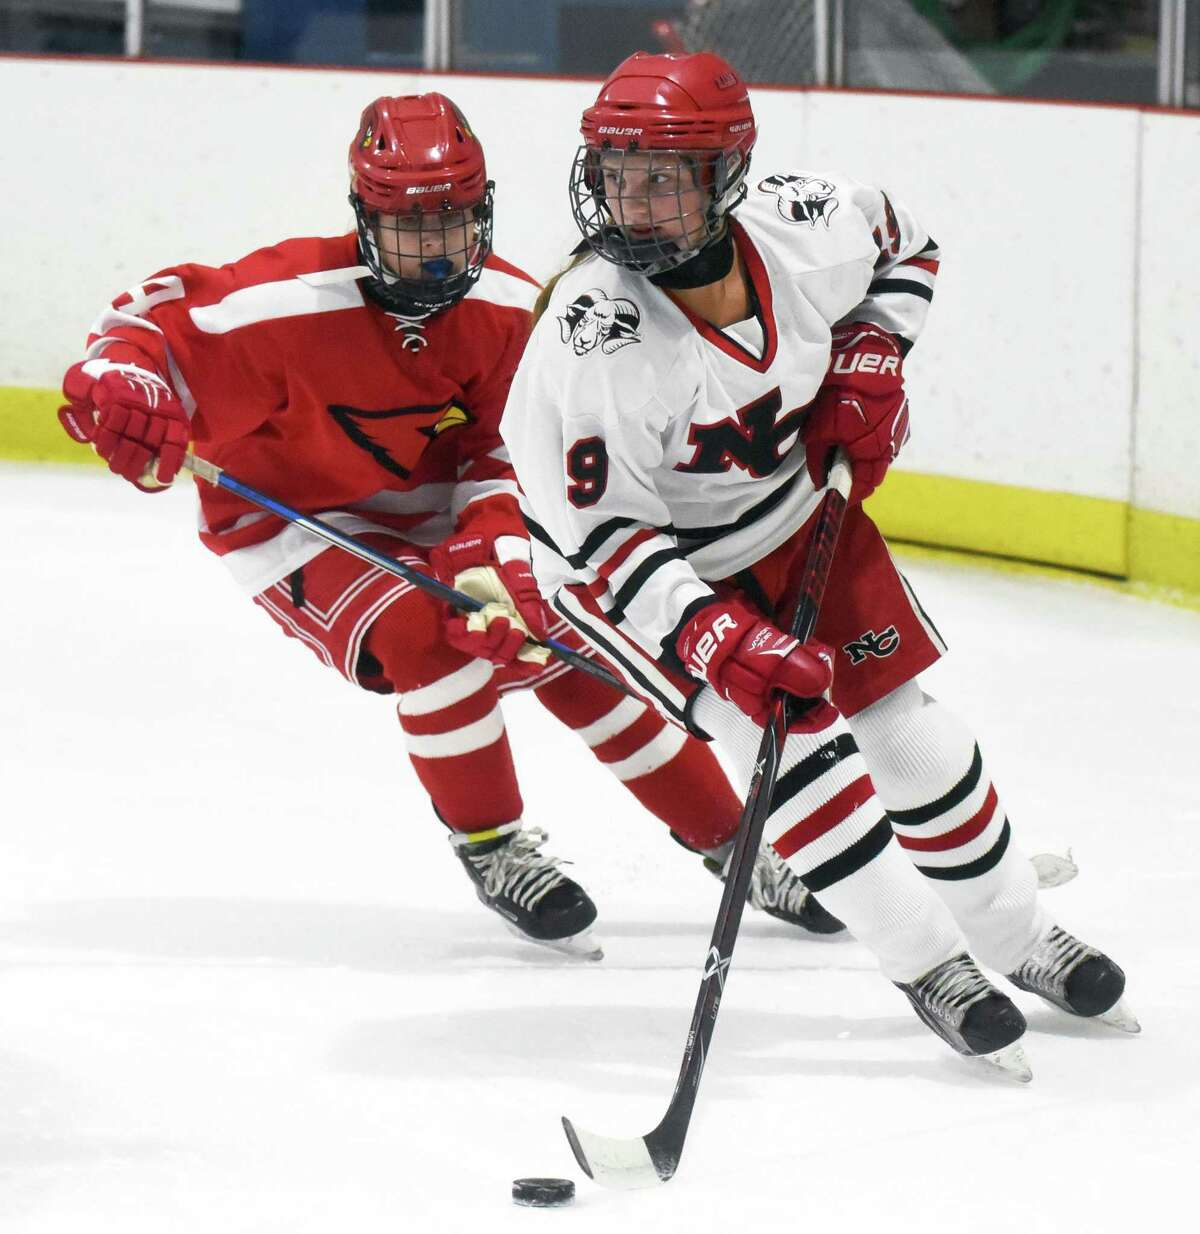 New Canaan has received a big boost with the return of junior defender McKenna Harden, who missed the first six games with an injury.